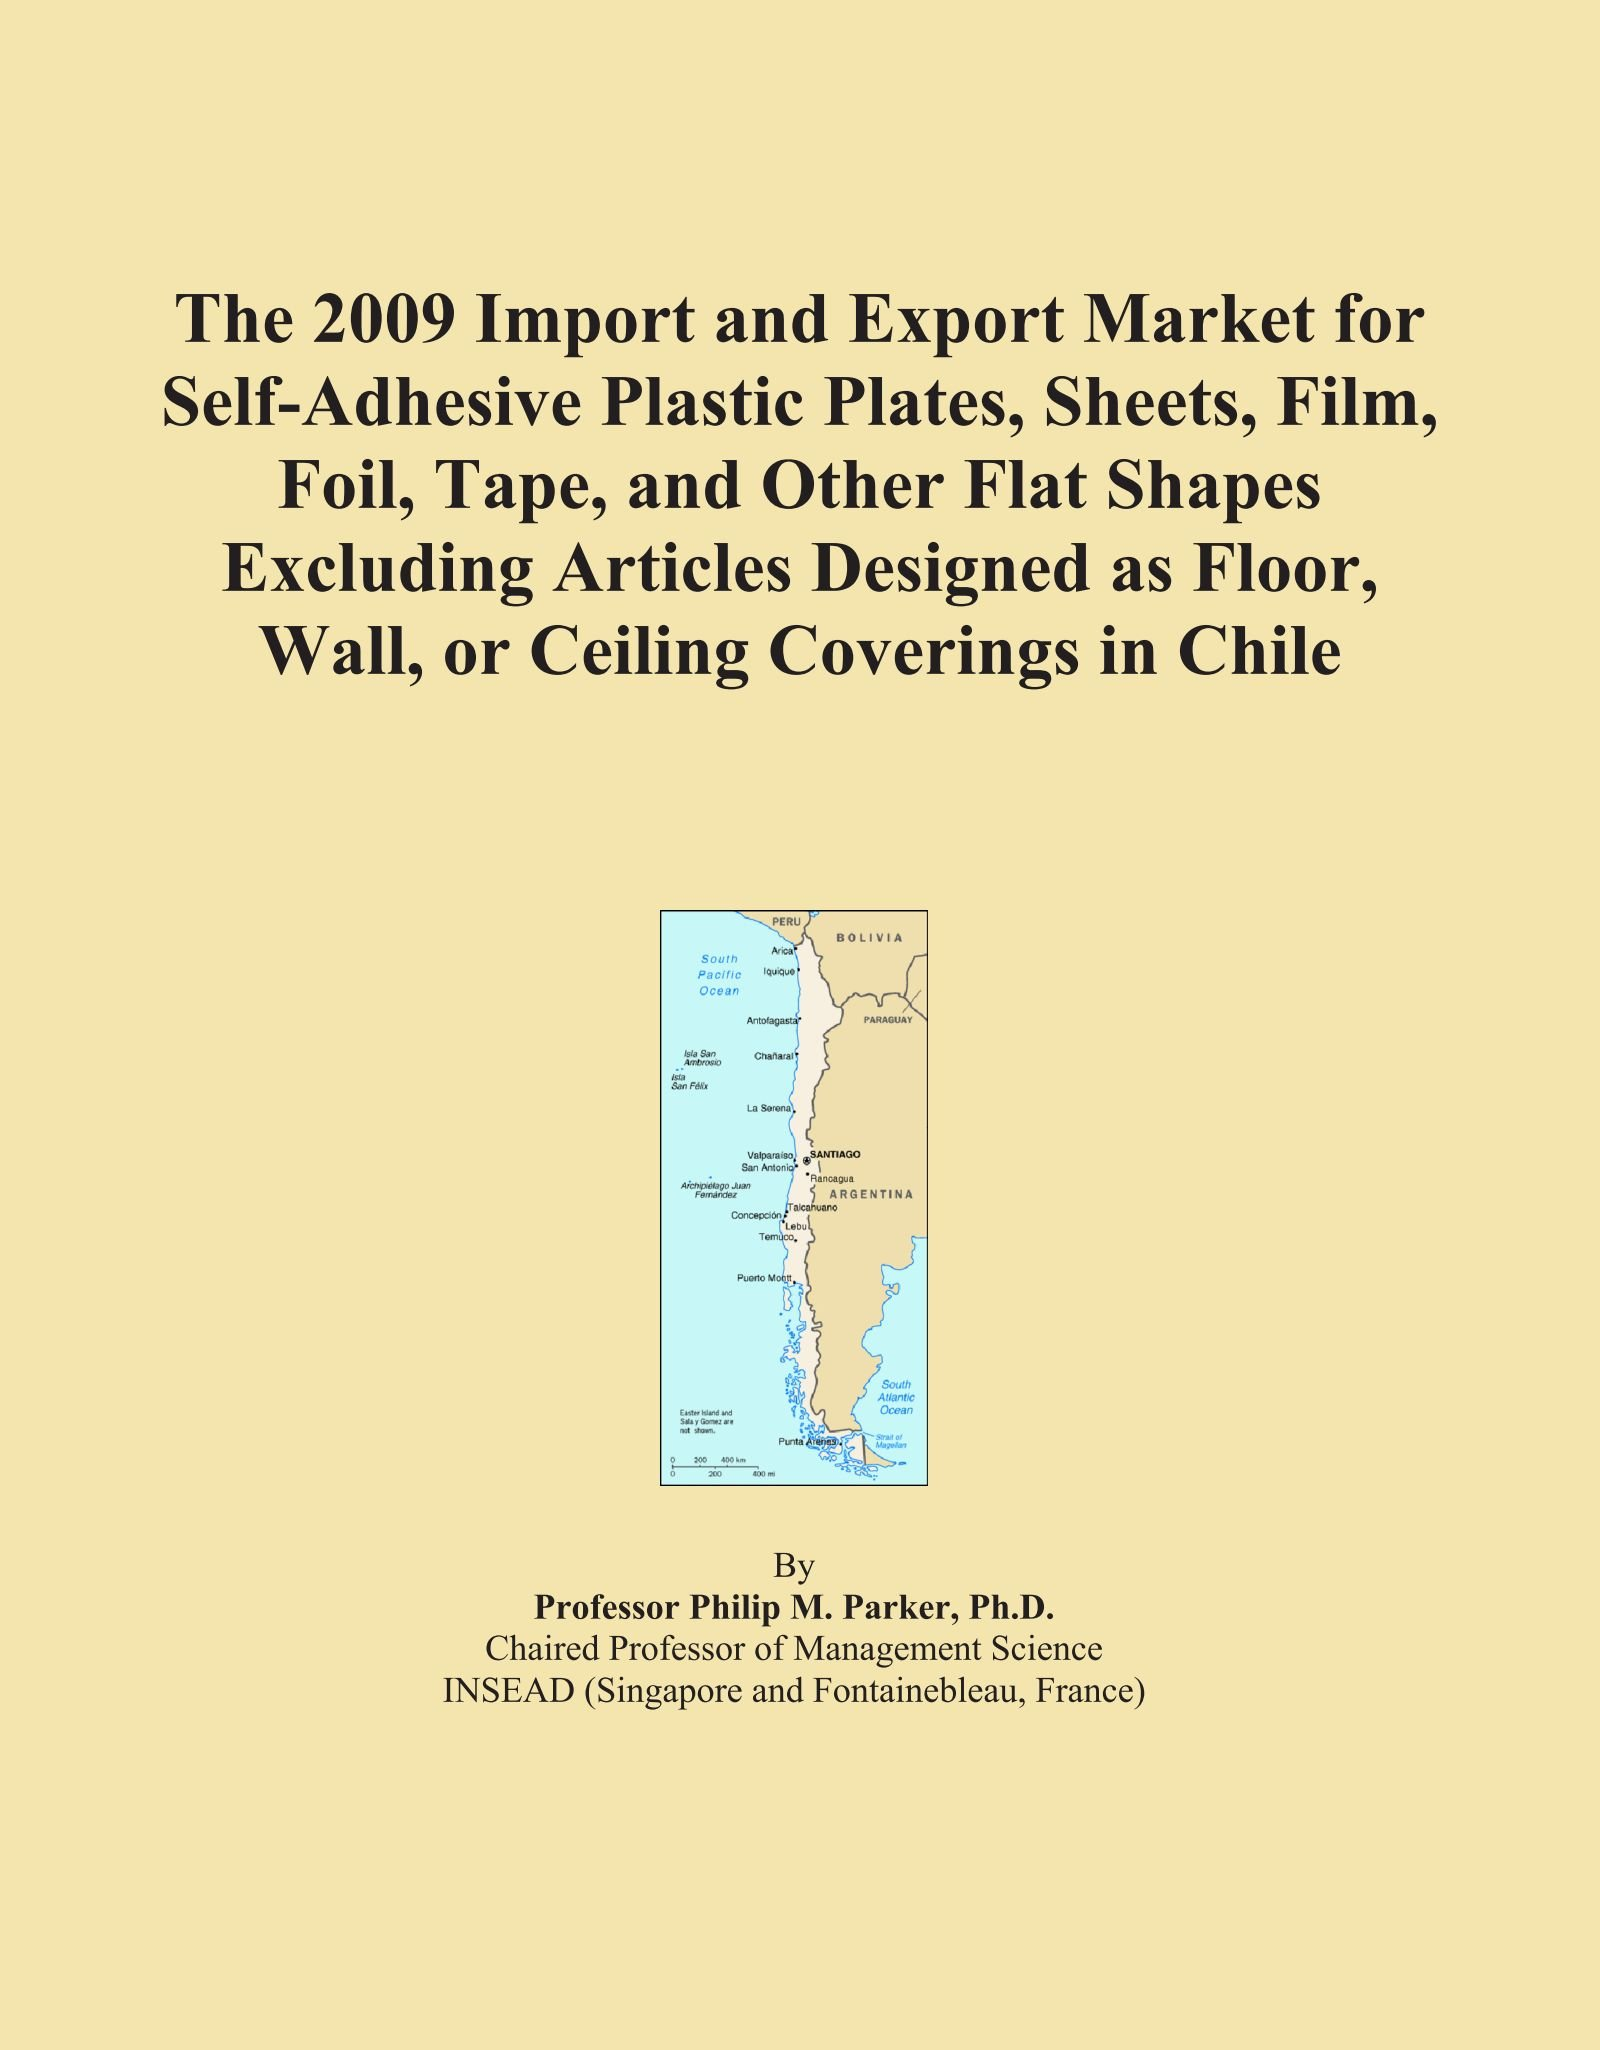 Read Online The 2009 Import and Export Market for Self-Adhesive Plastic Plates, Sheets, Film, Foil, Tape, and Other Flat Shapes Excluding Articles Designed as Floor, Wall, or Ceiling Coverings in Chile pdf